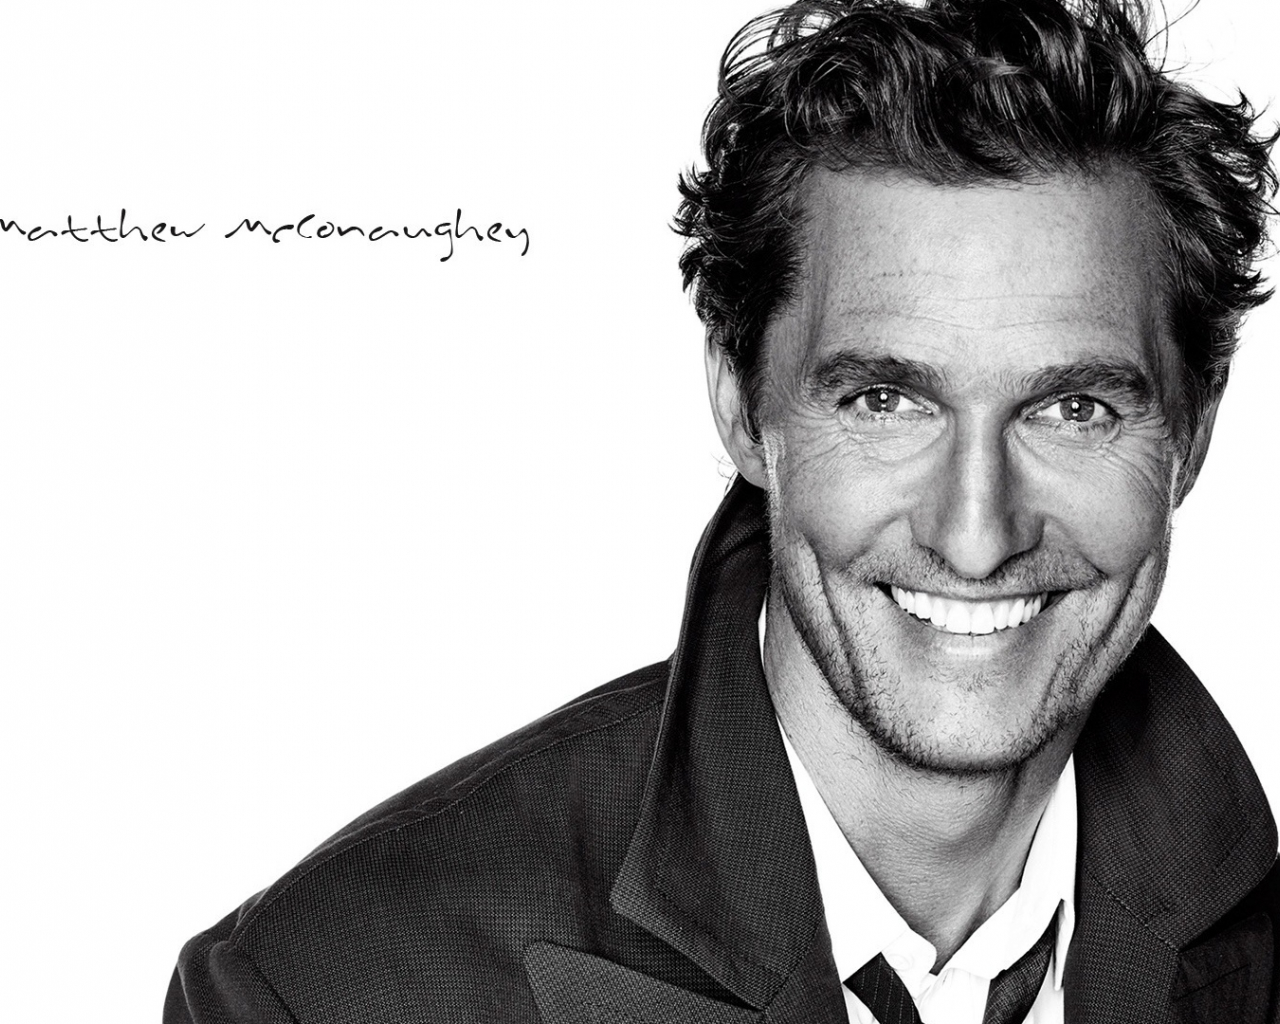 Free Download Full Hd Wallpaper Matthew Mcconaughey Smile Hairstyle 1920x1080 For Your Desktop Mobile Tablet Explore 88 Matthew Mcconaughey Wallpapers Matthew Mcconaughey Wallpapers Matthew Williamson Wallpaper Matthew Perry Wallpaper